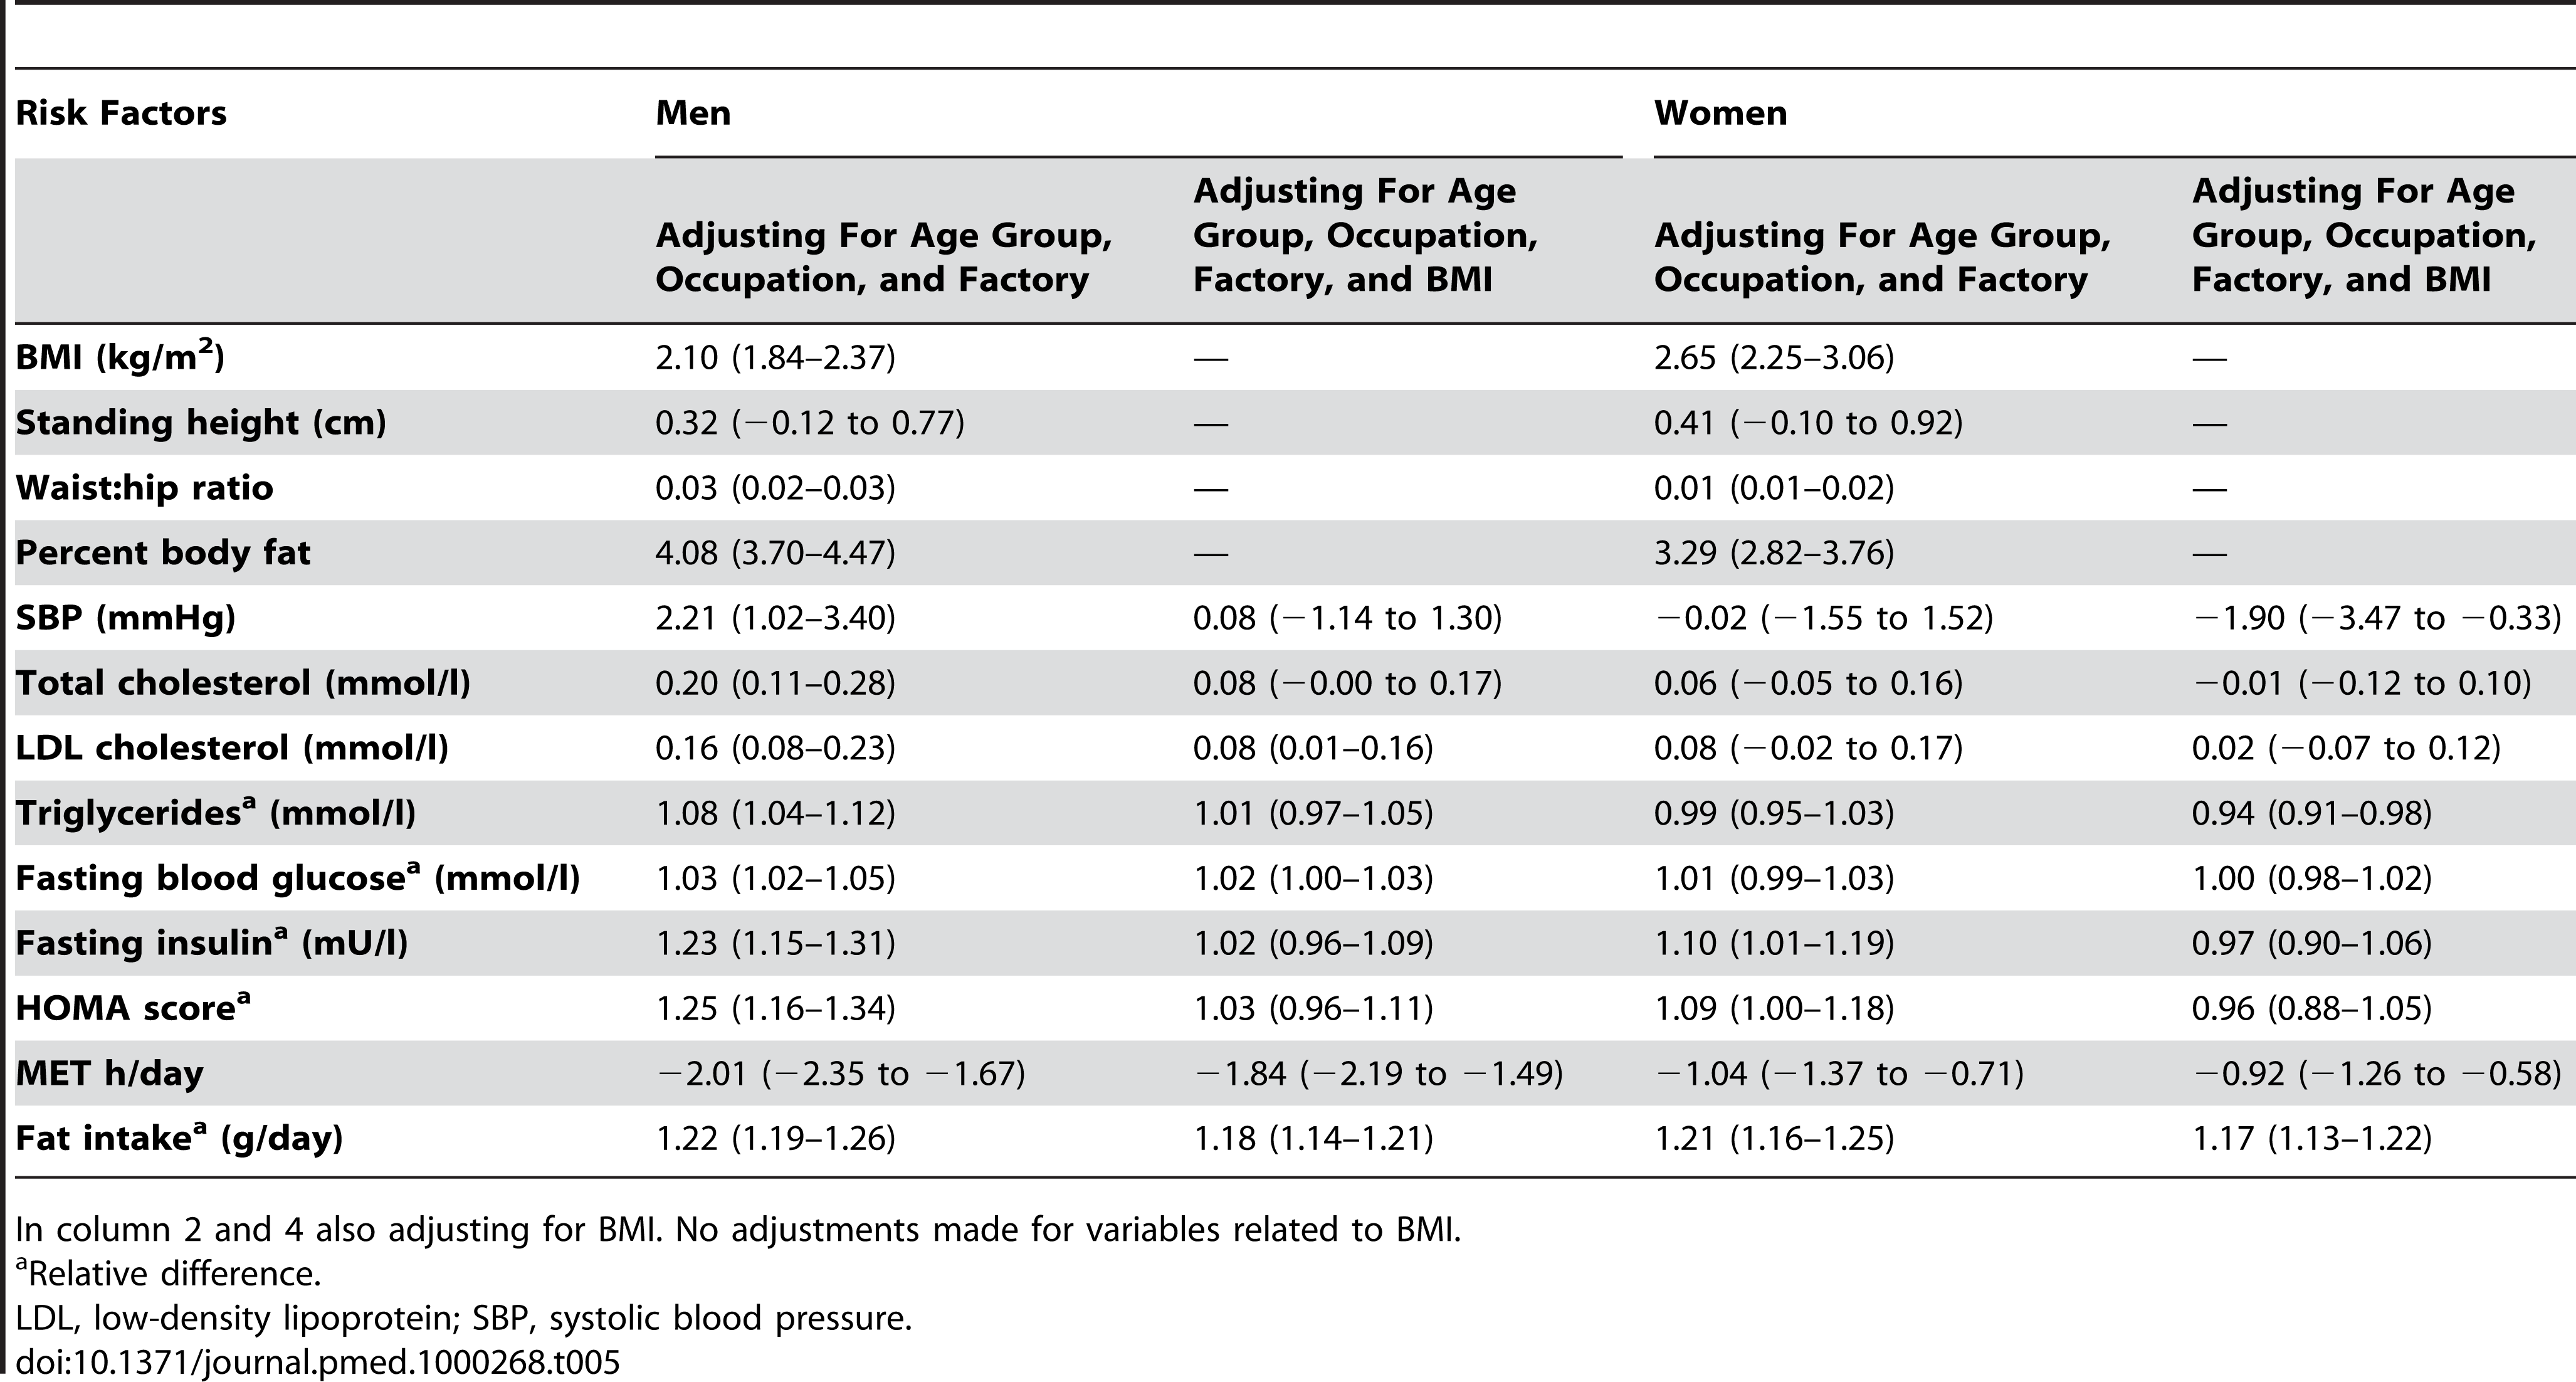 Estimated contrast (95% CI) between migrant and rural sibling for men and women adjusted for age, age group, and factory including a random effect of sibling pair.